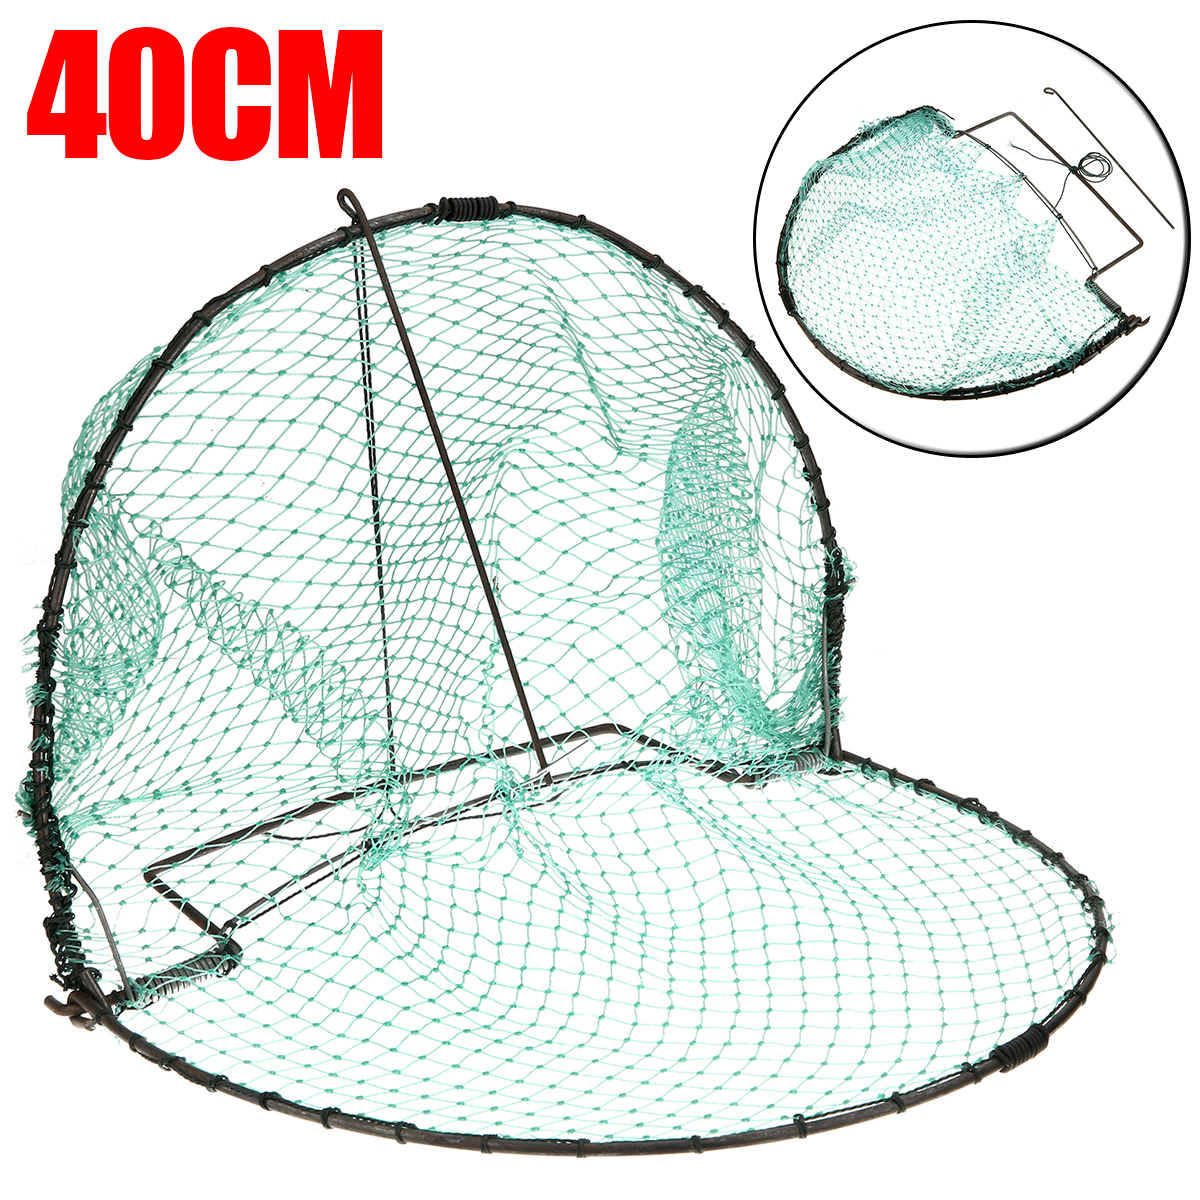 Bird Sparrow Pigeon Quail Trap Mesh Outdoor Hunting Foldable Netting  Corrosion Resistance 40cm